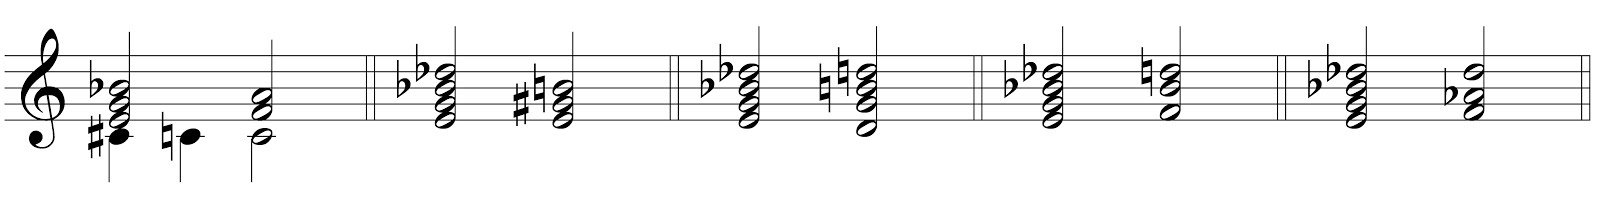 Music Theory: Diminished Chords